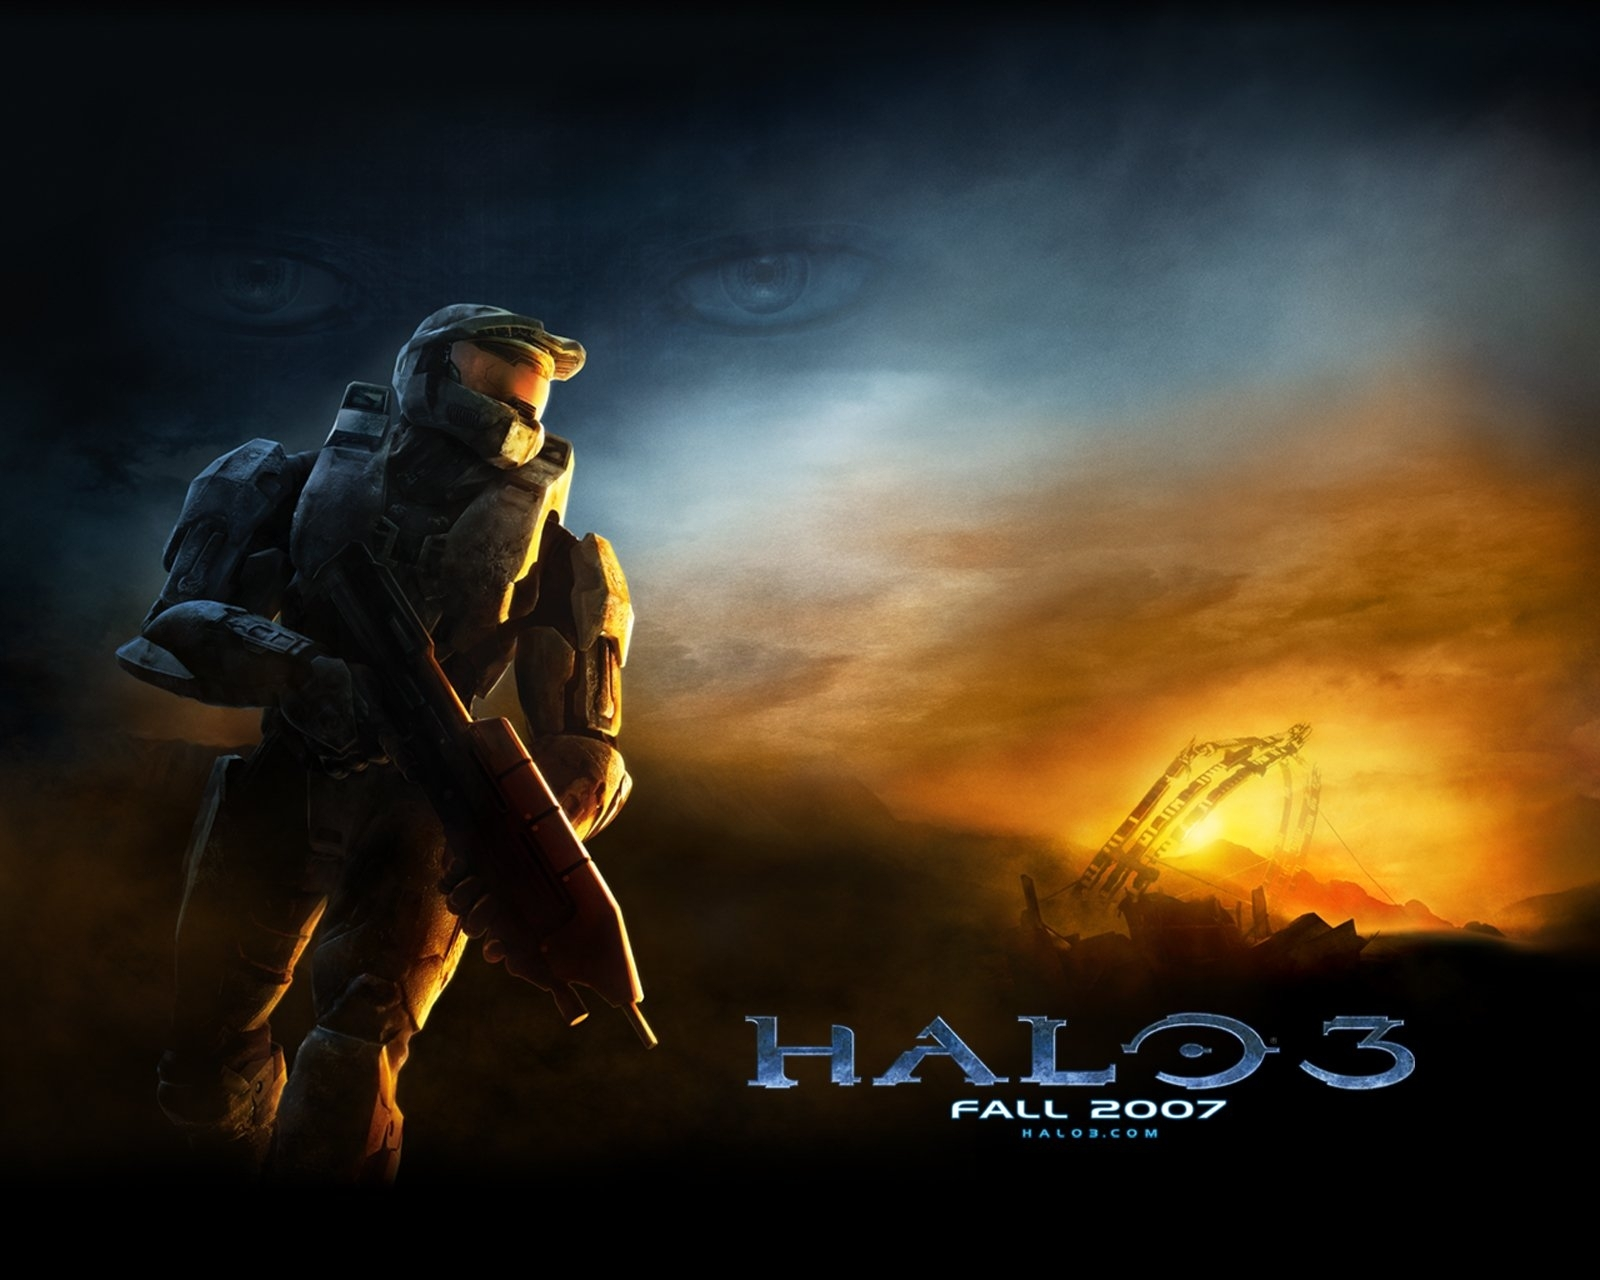 32 halo 3 hd wallpapers | background images - wallpaper abyss